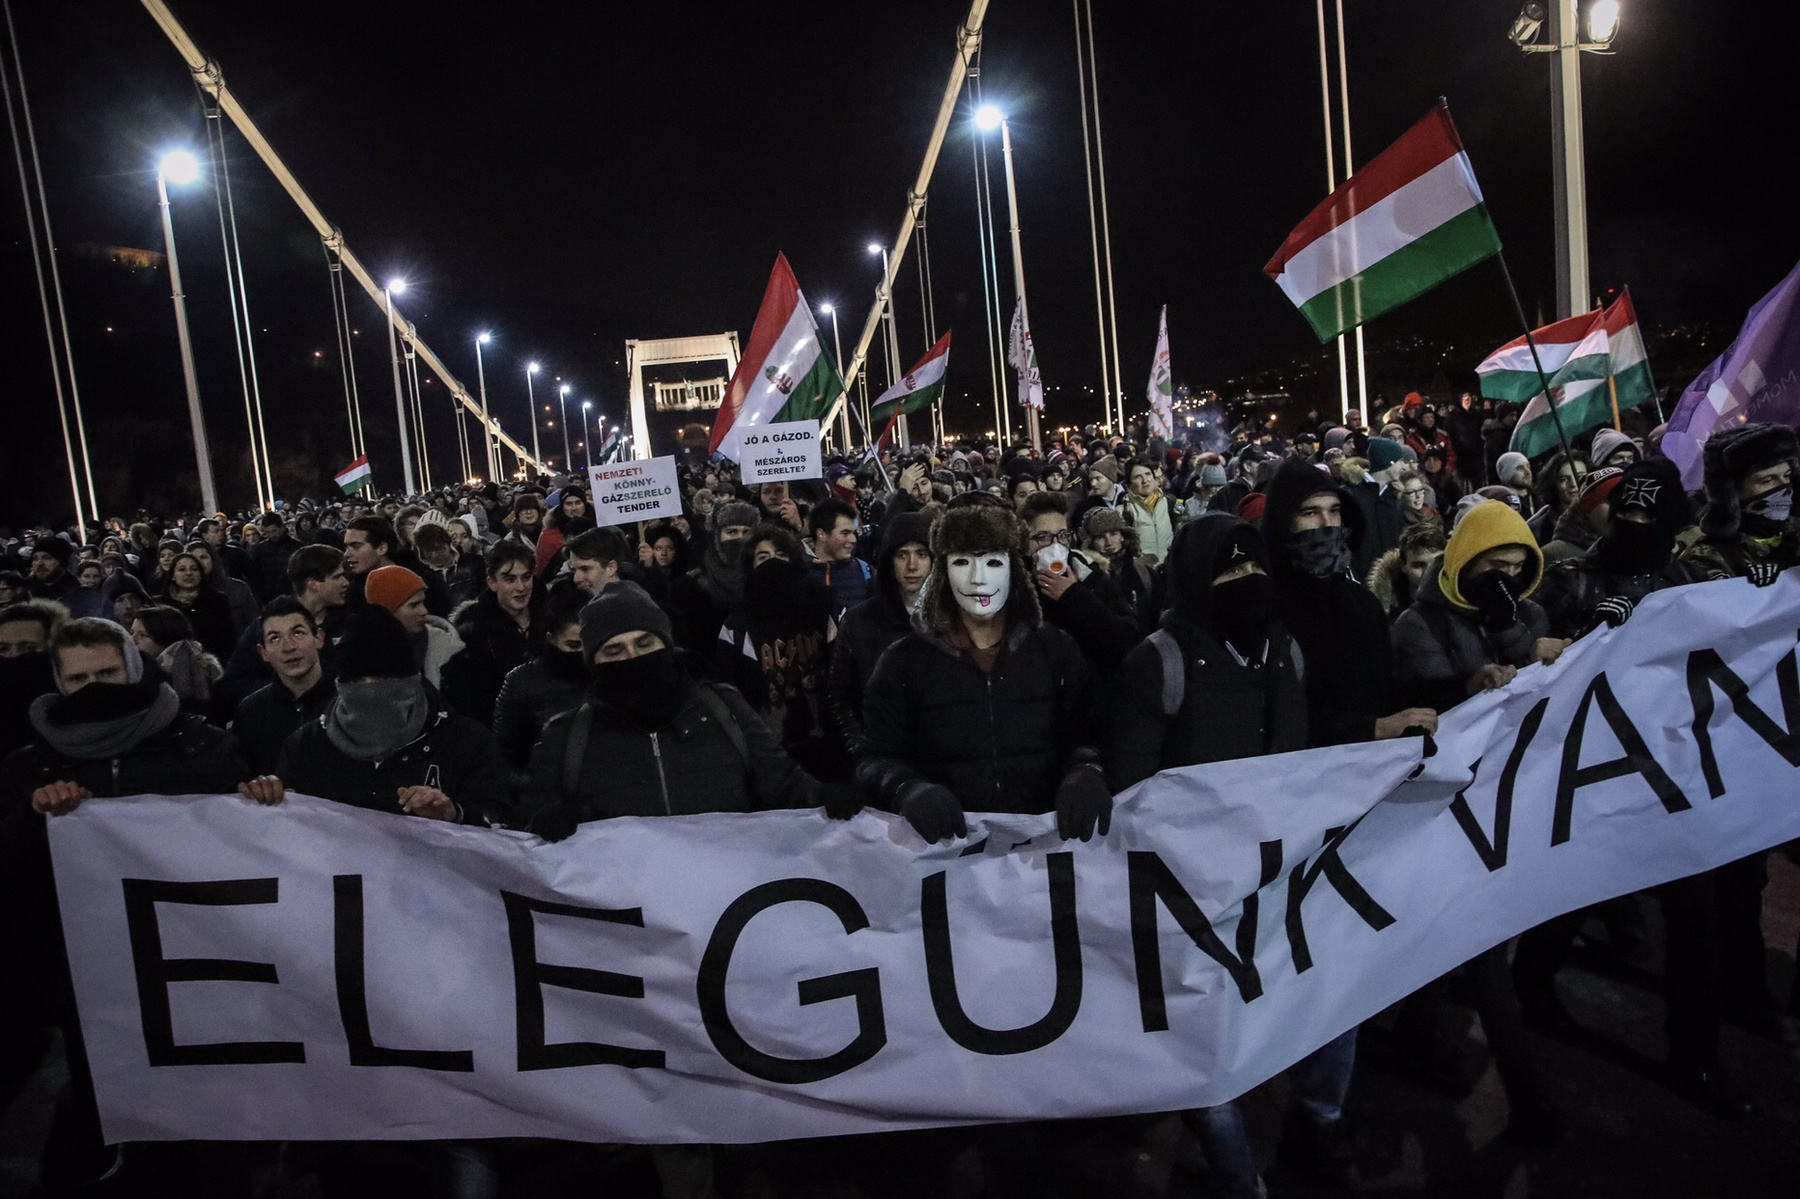 After midnight, people started to disperse. At most 150 people stayed at Kossuth square, a group of approximately 500 people went for the Sándor Palace, where they chanted a bit and sung the Ode to Joy.